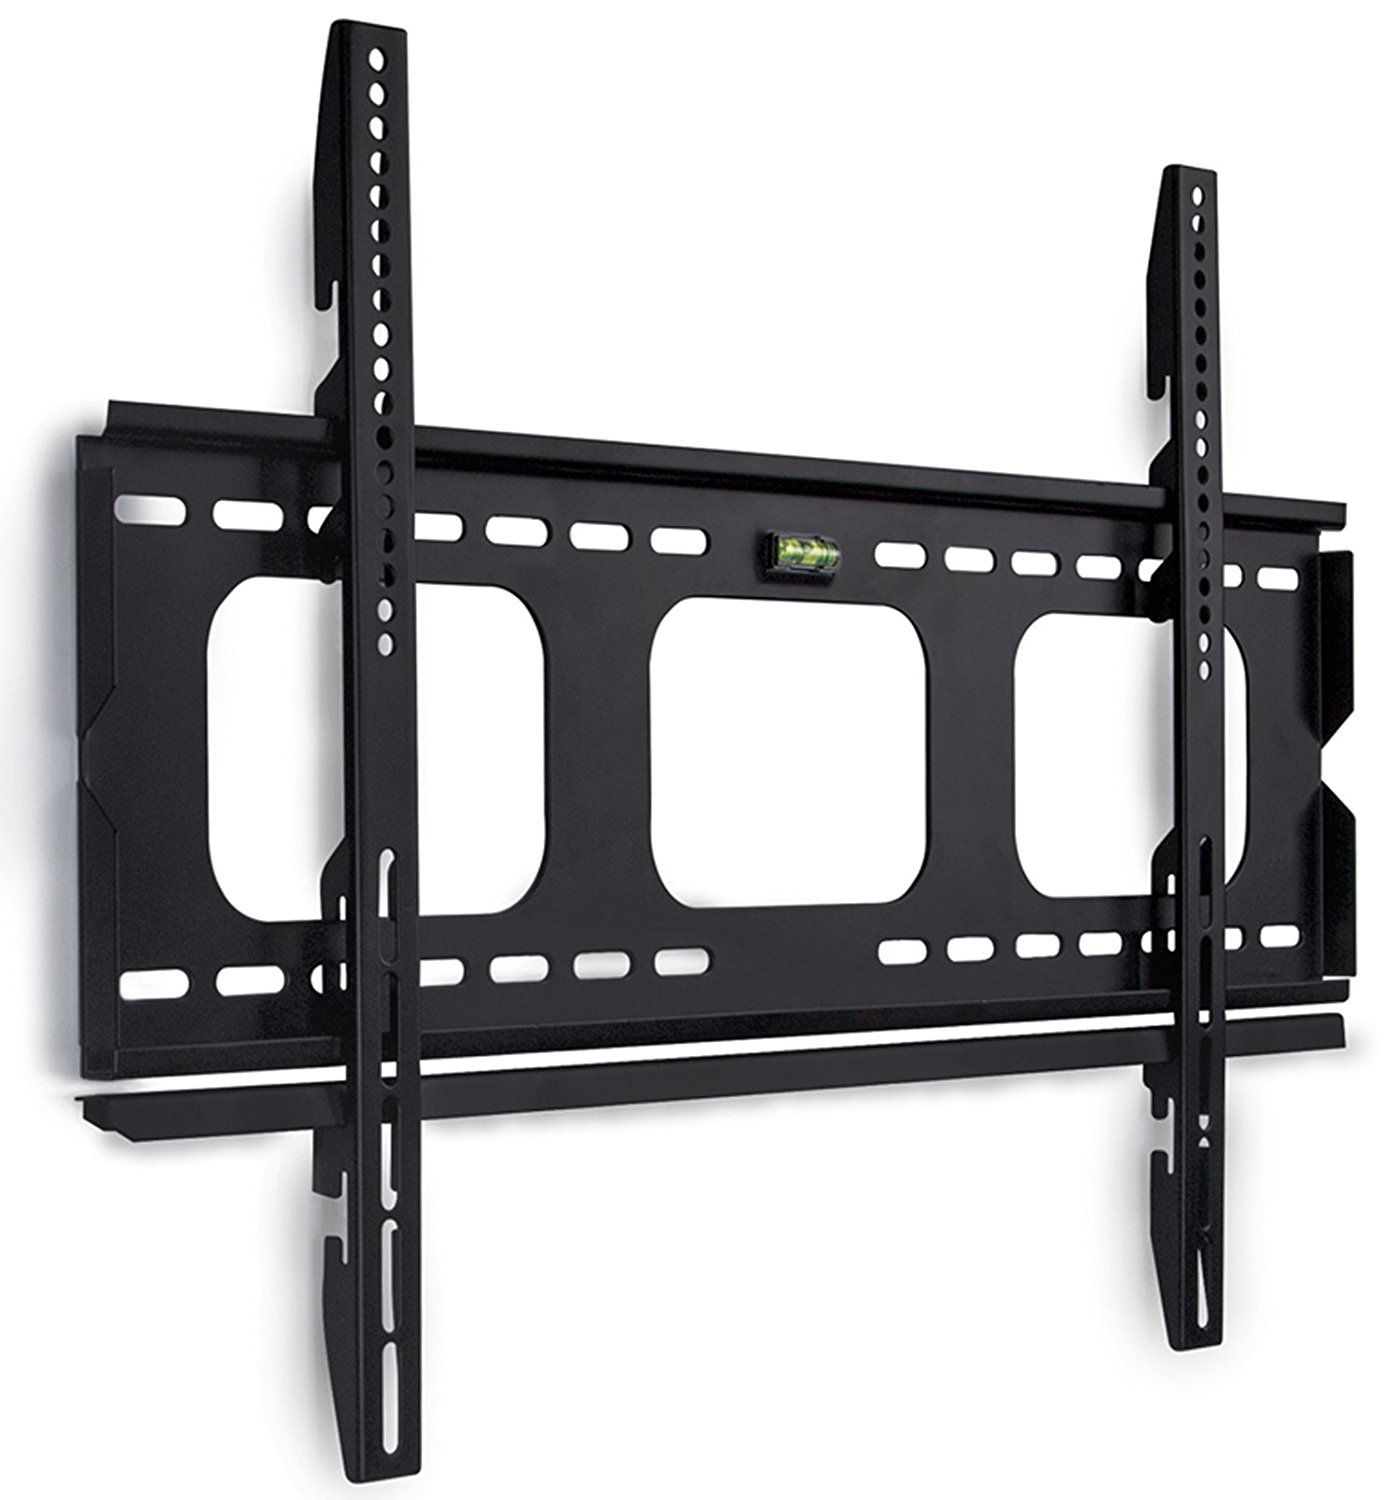 The 8 Best TV Wall Mounts to Buy in 2018